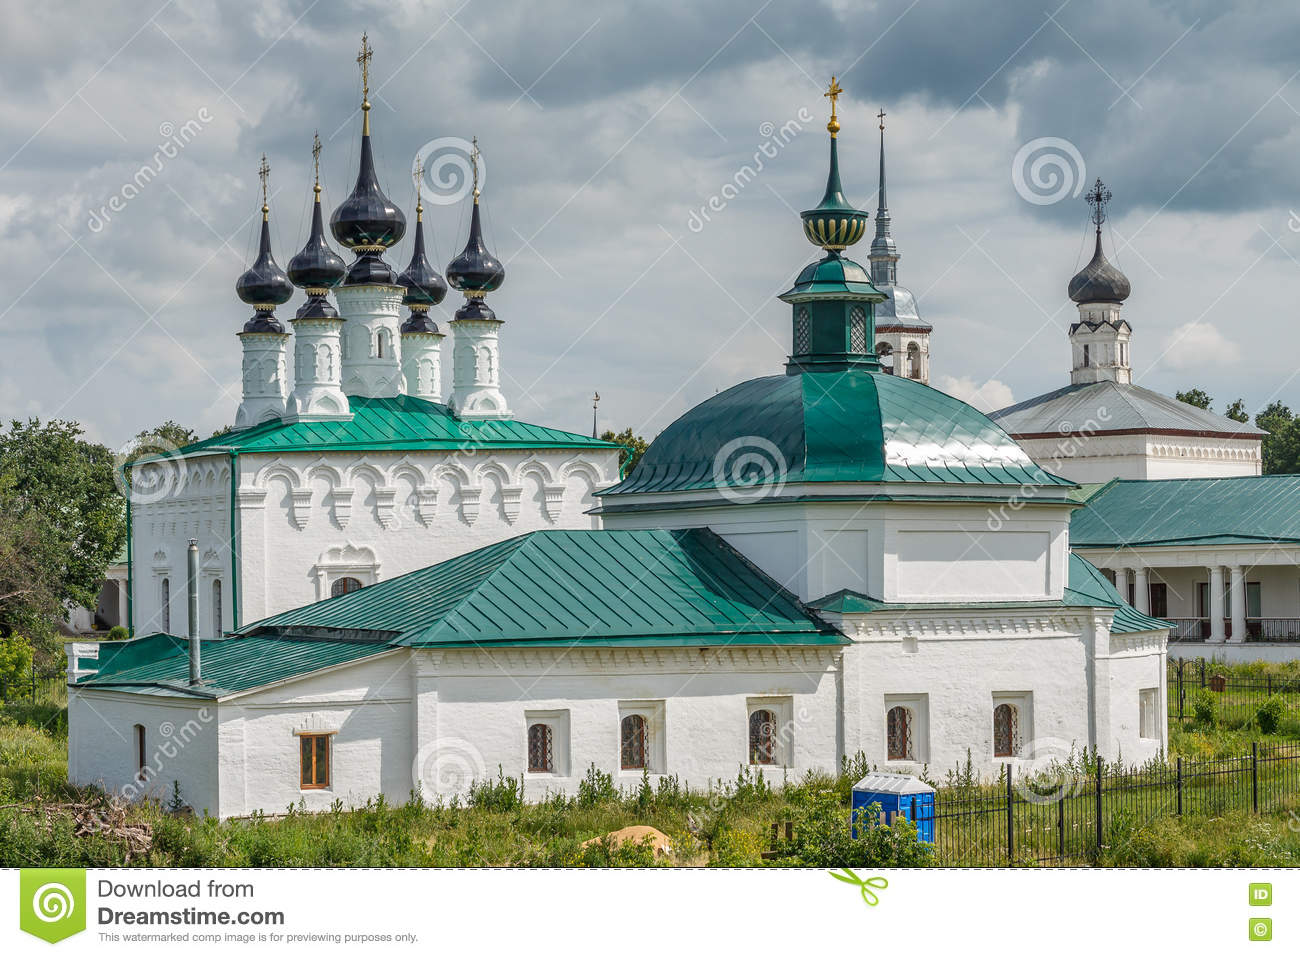 Architectural monuments of Suzdal